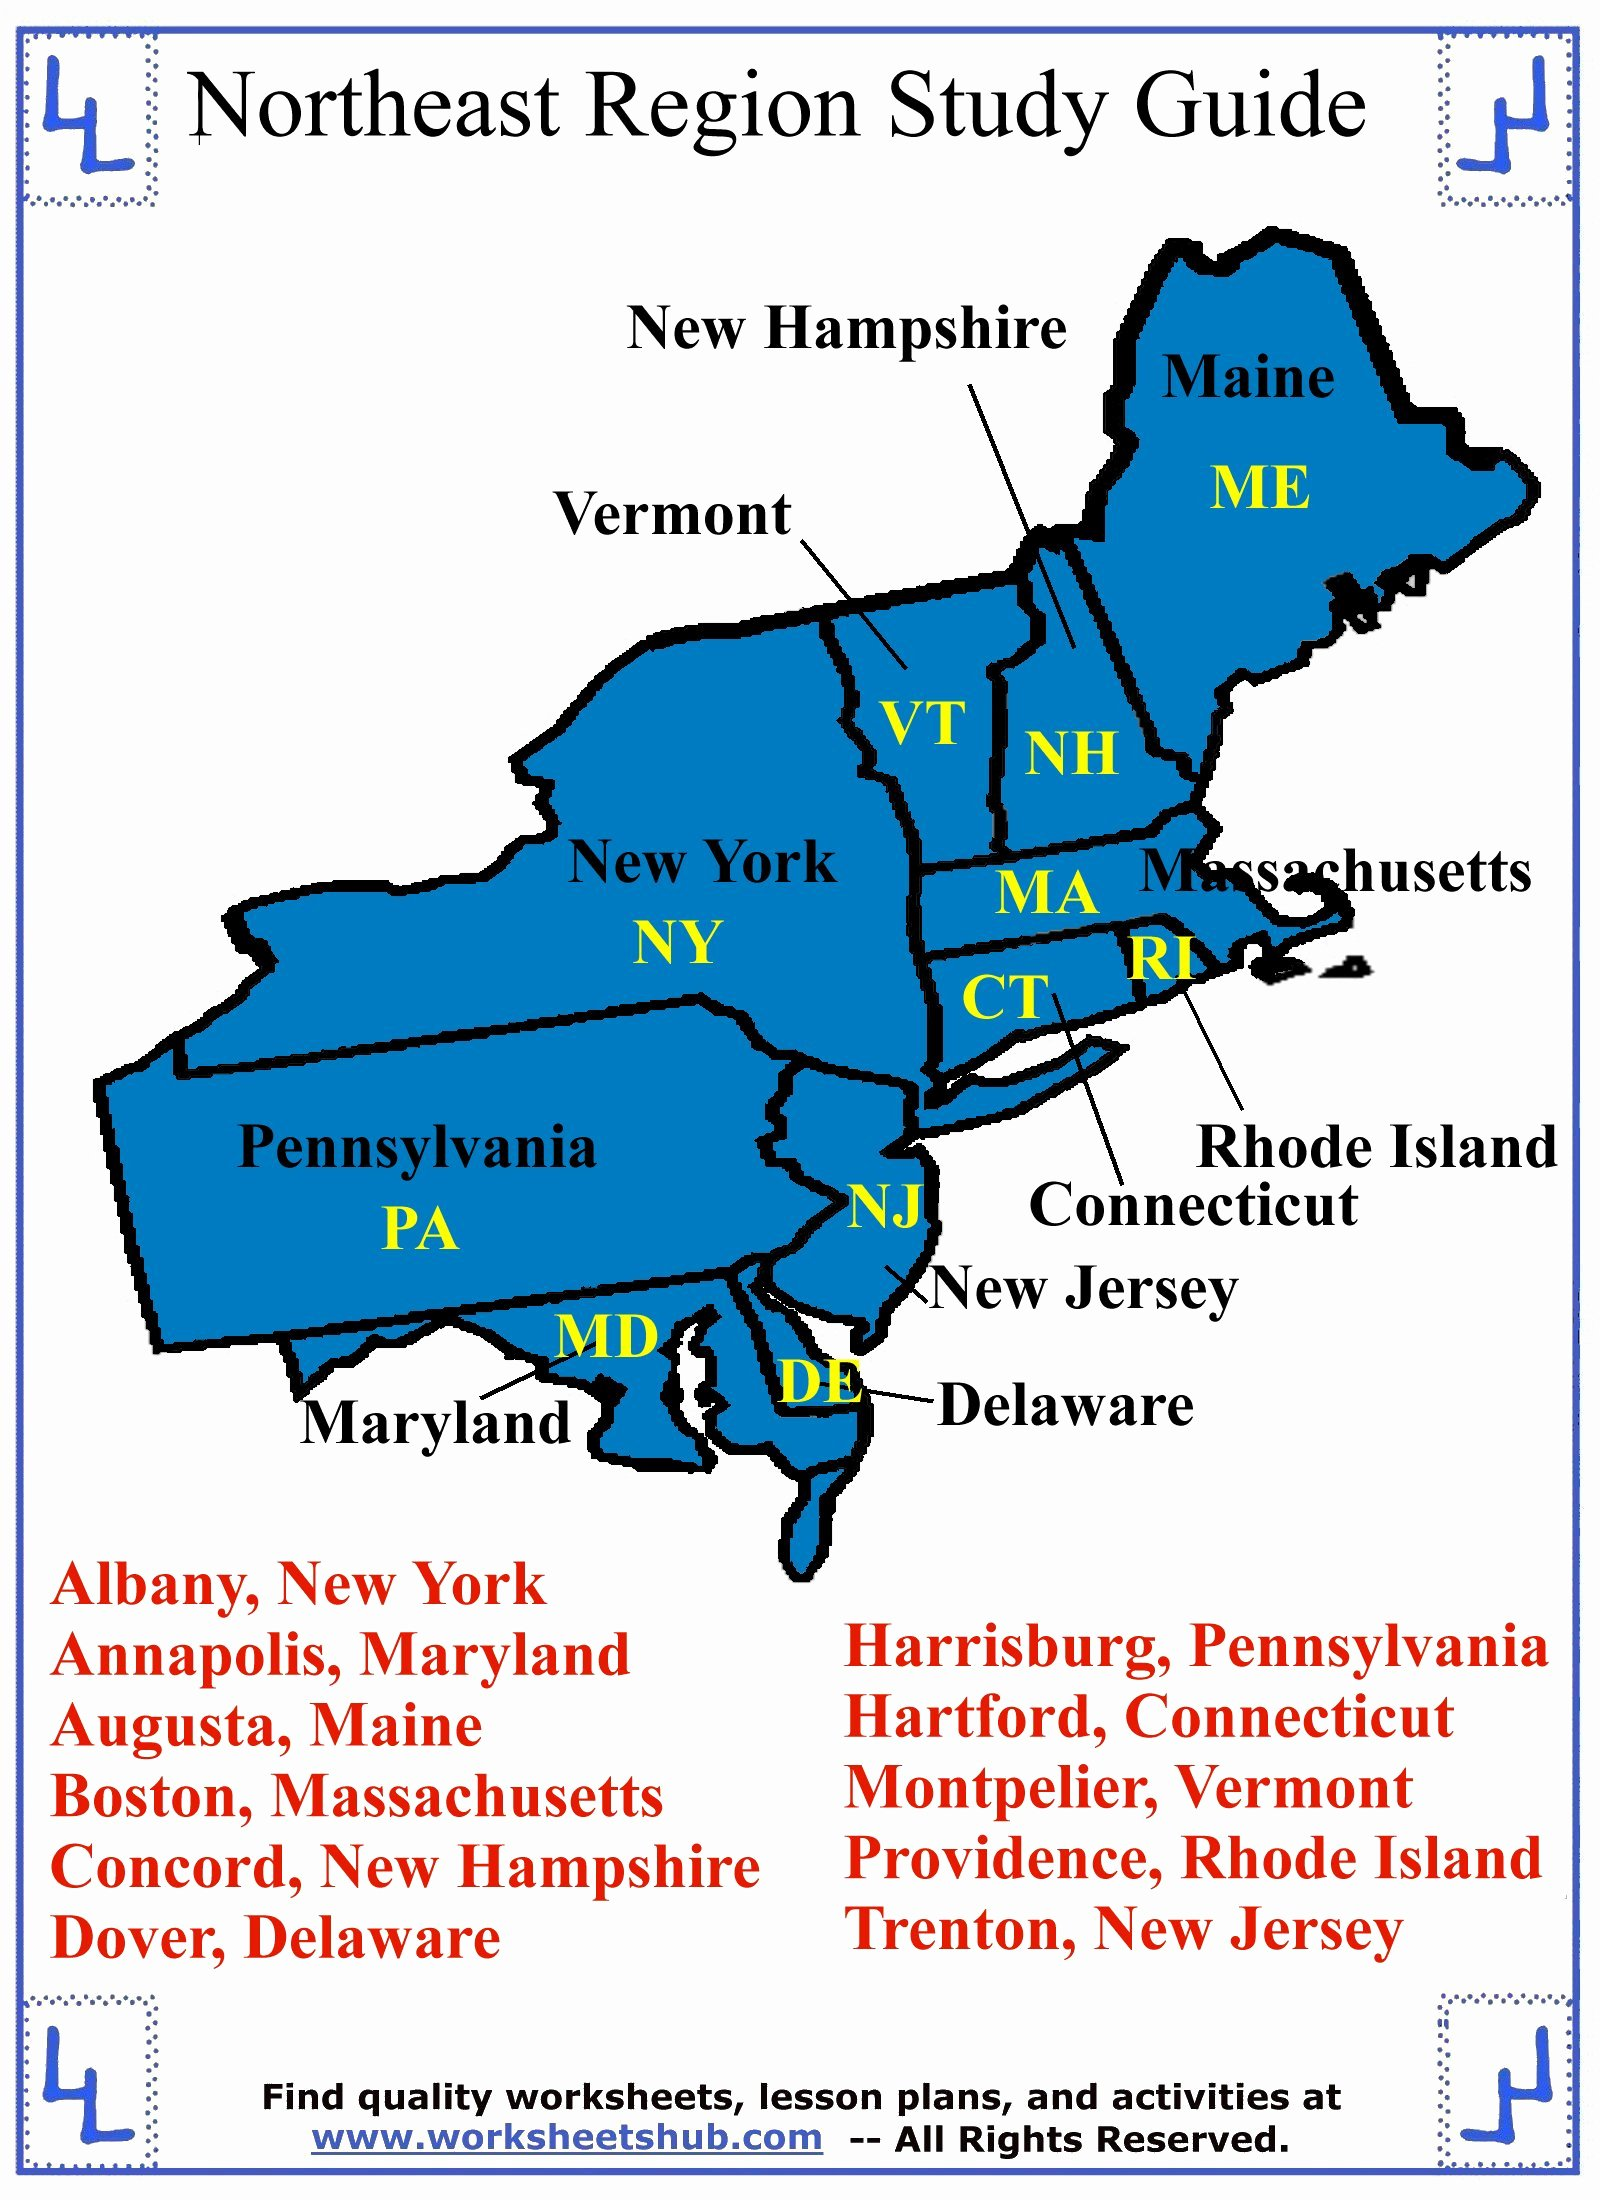 Northeast States and Capitals Worksheet Free Fourth Grade social Stu S northeast Region States and